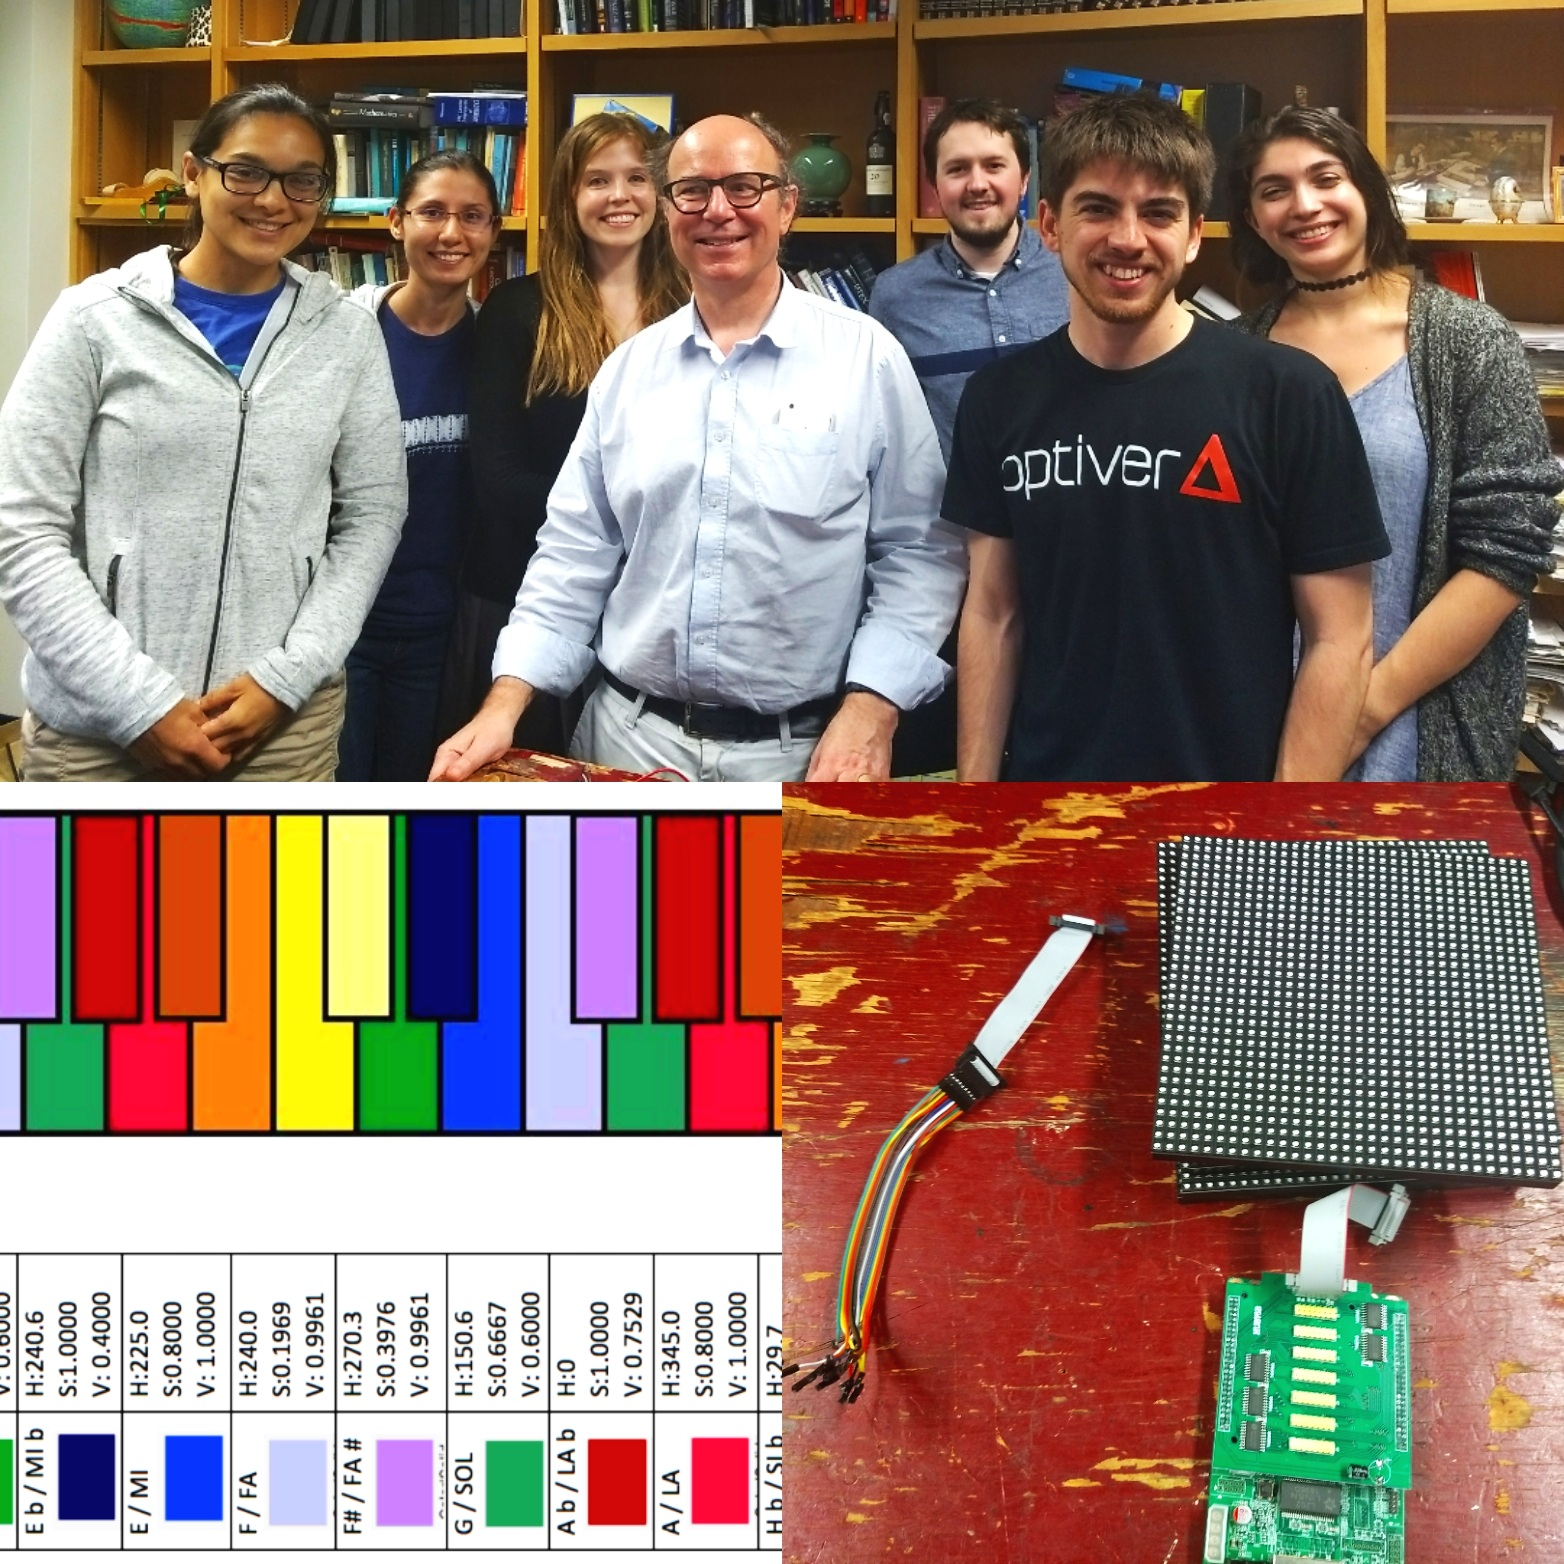 Top image (left to right):  Stephanie Brendt, [unknown], Mary Bichner, Frank Wilczek, Brodi Elwood, Brent Smith, Siranush Babakhanova, Fall 2018, MIT.  Bottom left:  Synesthetic map of Mary Bichner with corresponding color codes.  Bottom right:  prototype of LED technology.